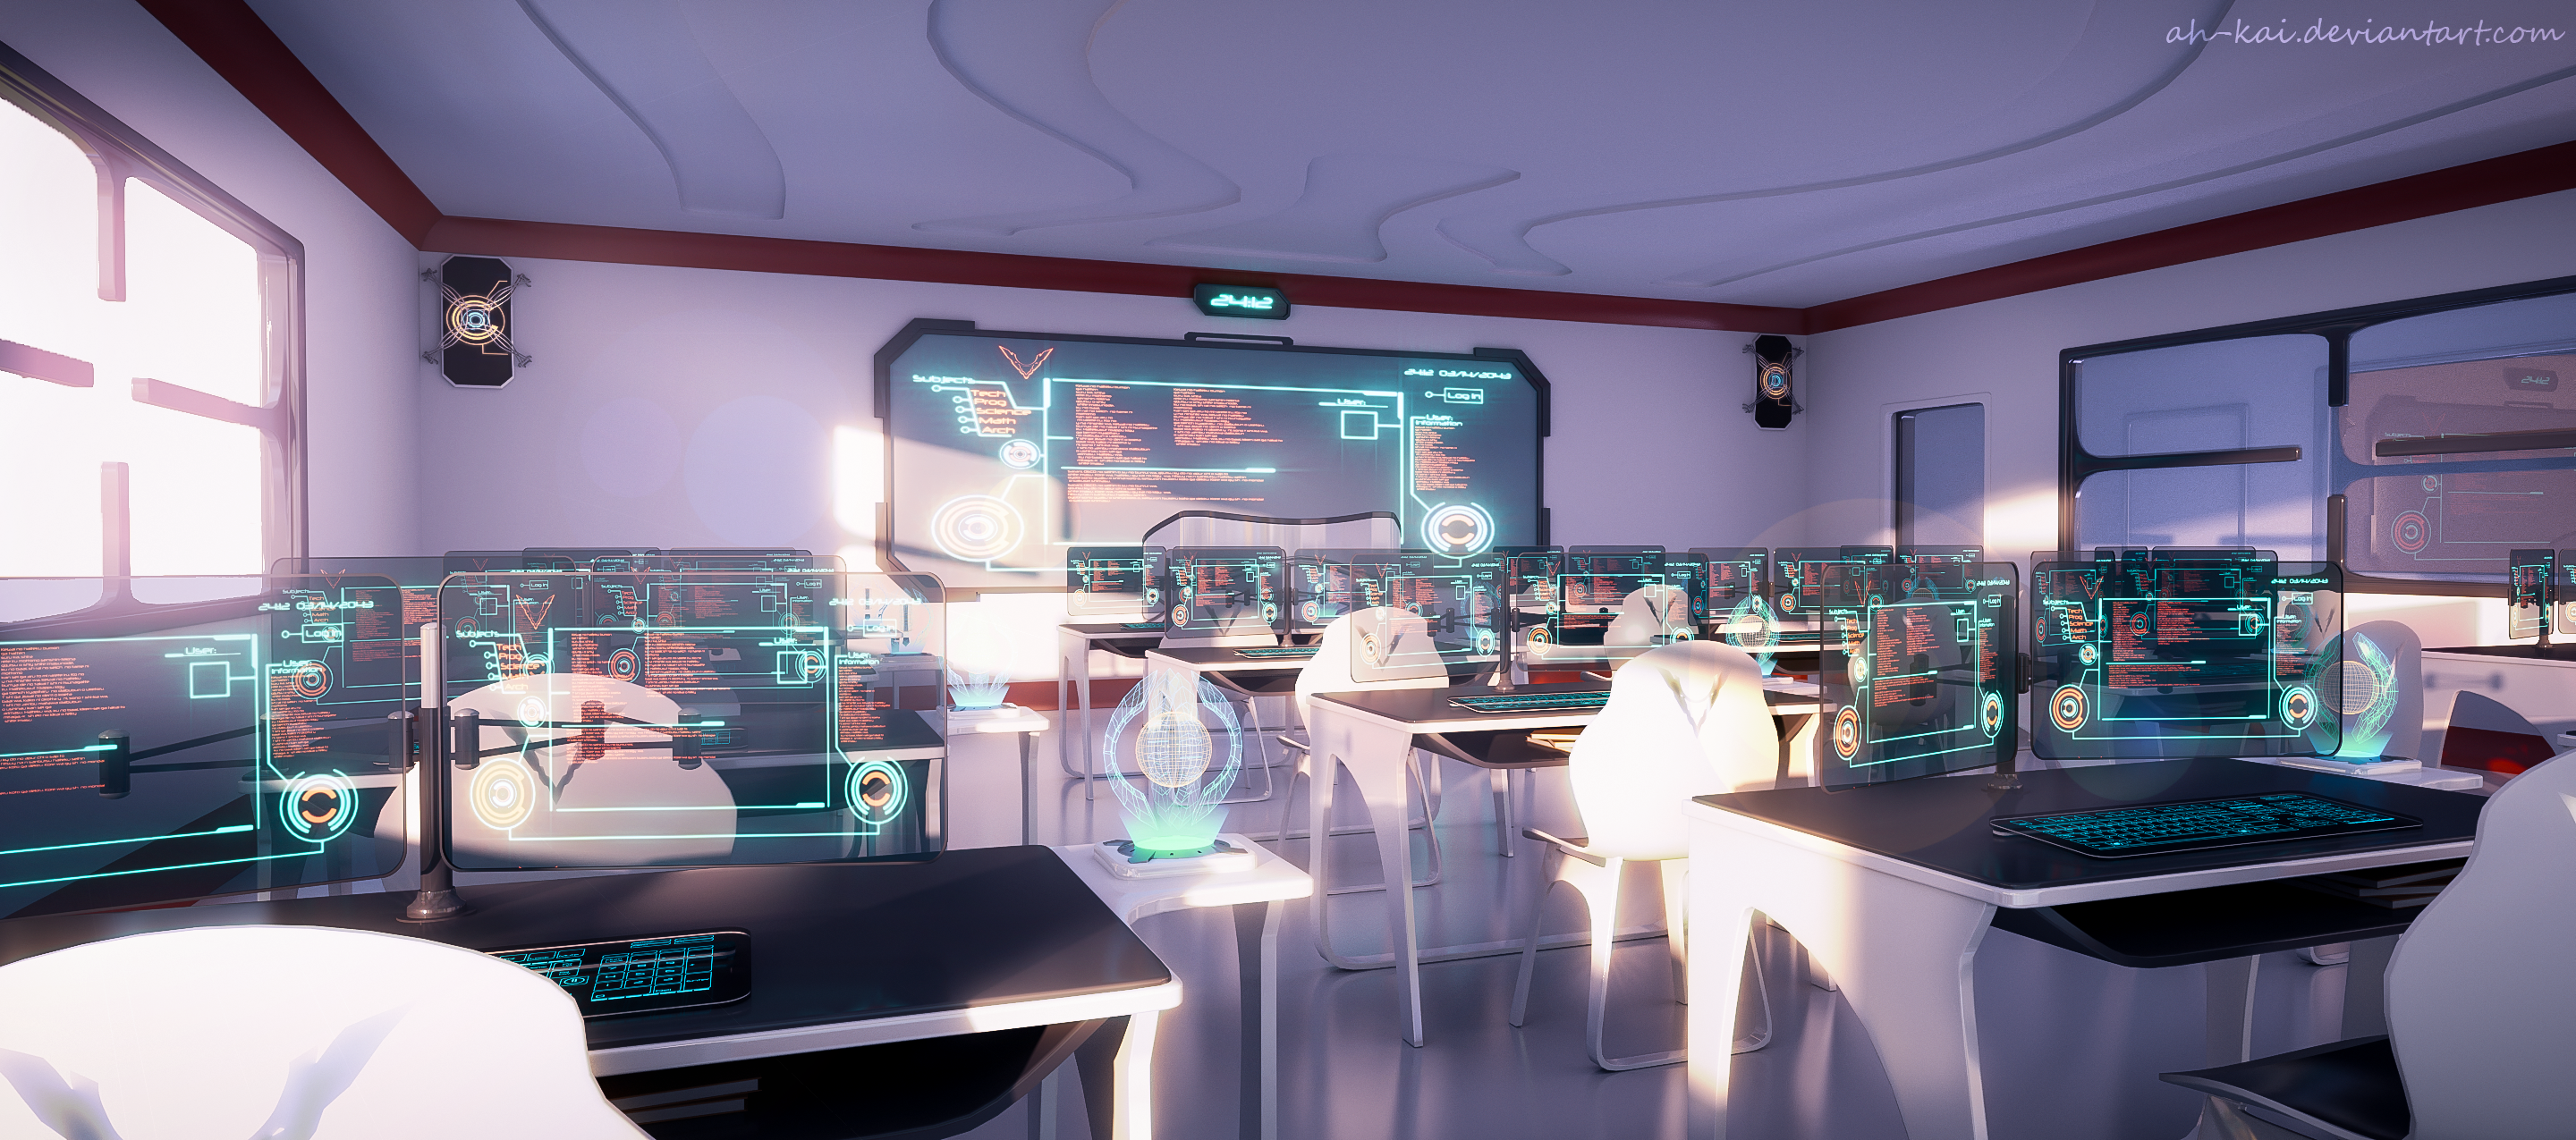 Classroom Wallpaper Design : Sci fi anime classroom by ah kai on deviantart